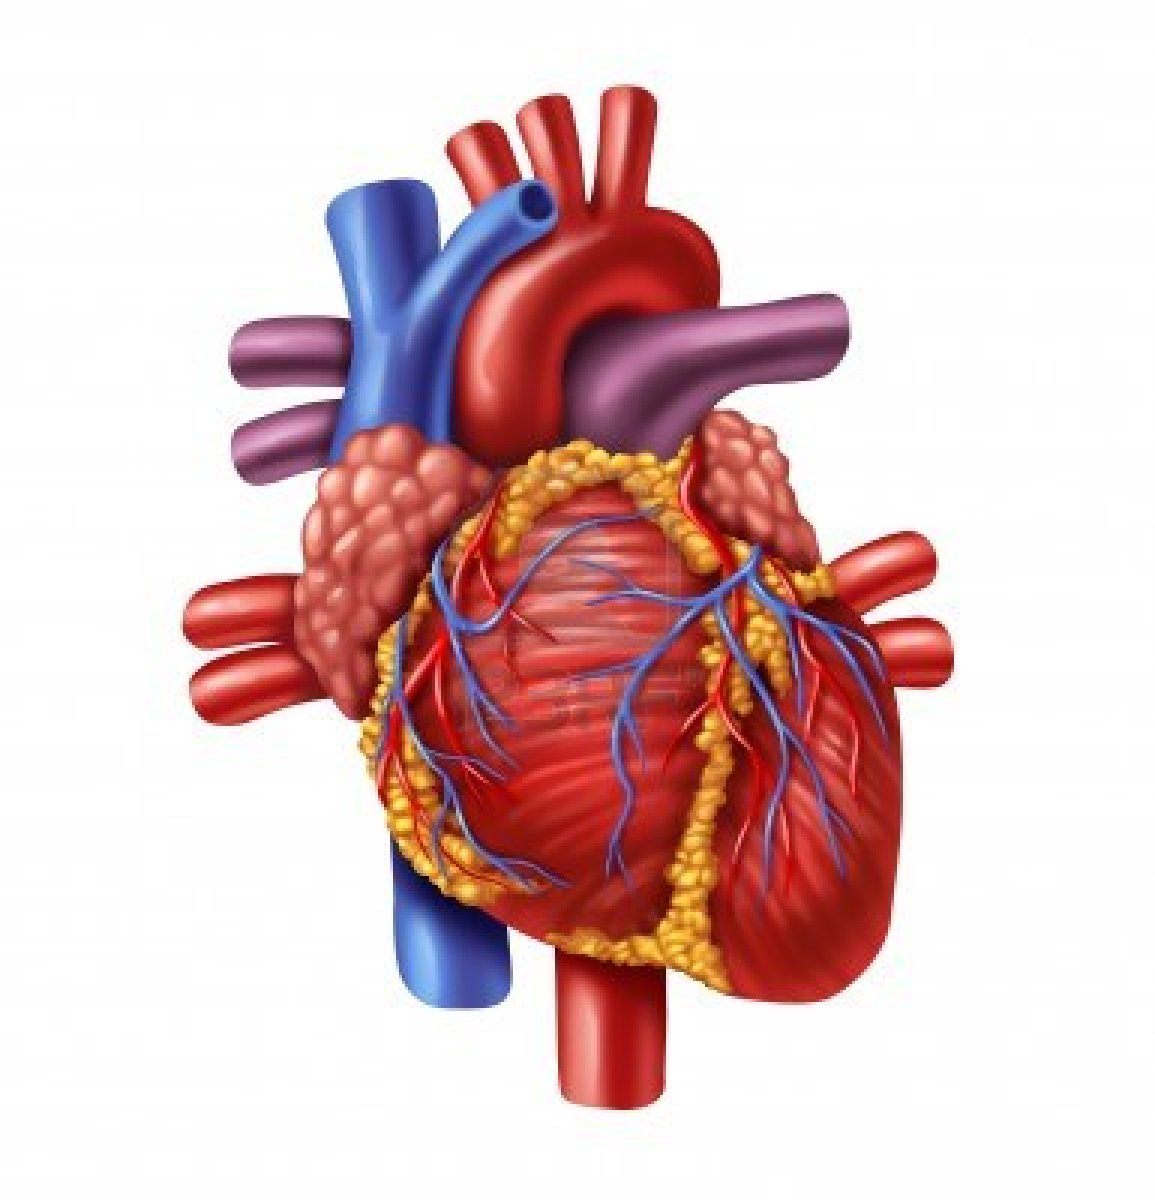 anterior heart diagram unlabeled 3 way switch wiring light in middle a year mbarara